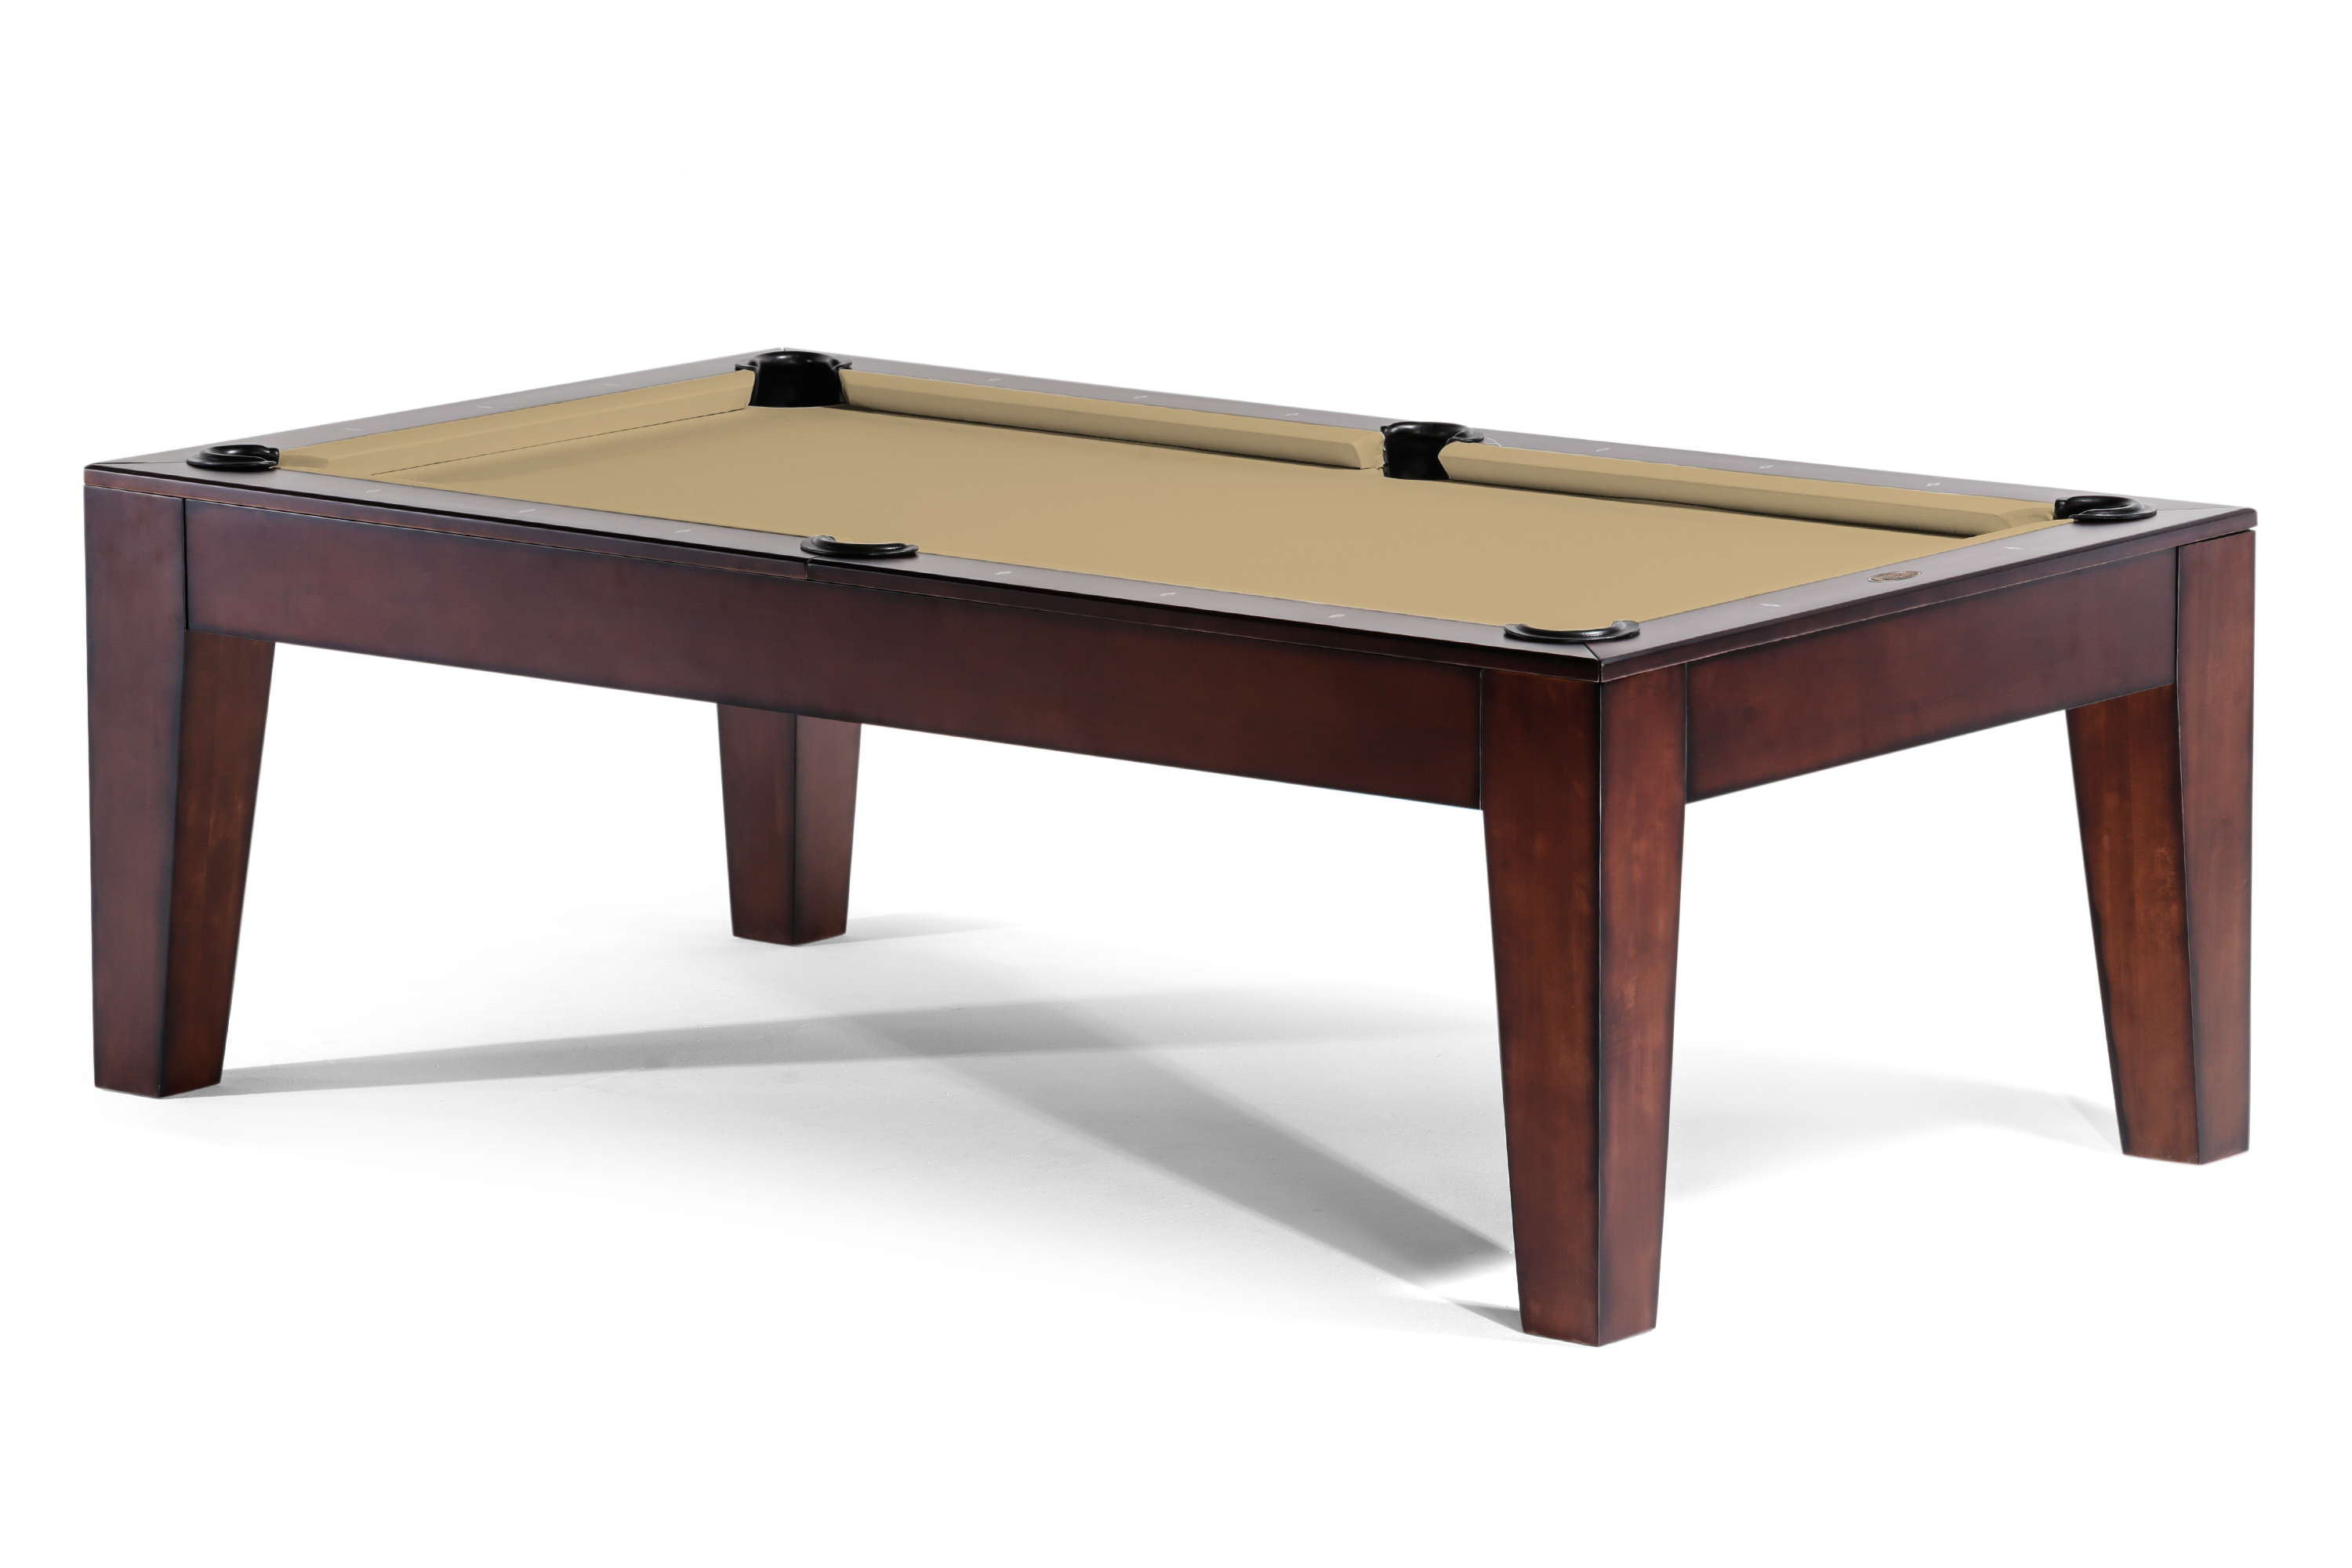 custom build tables table pin pinterest pong wood top cheap pool ping ideas